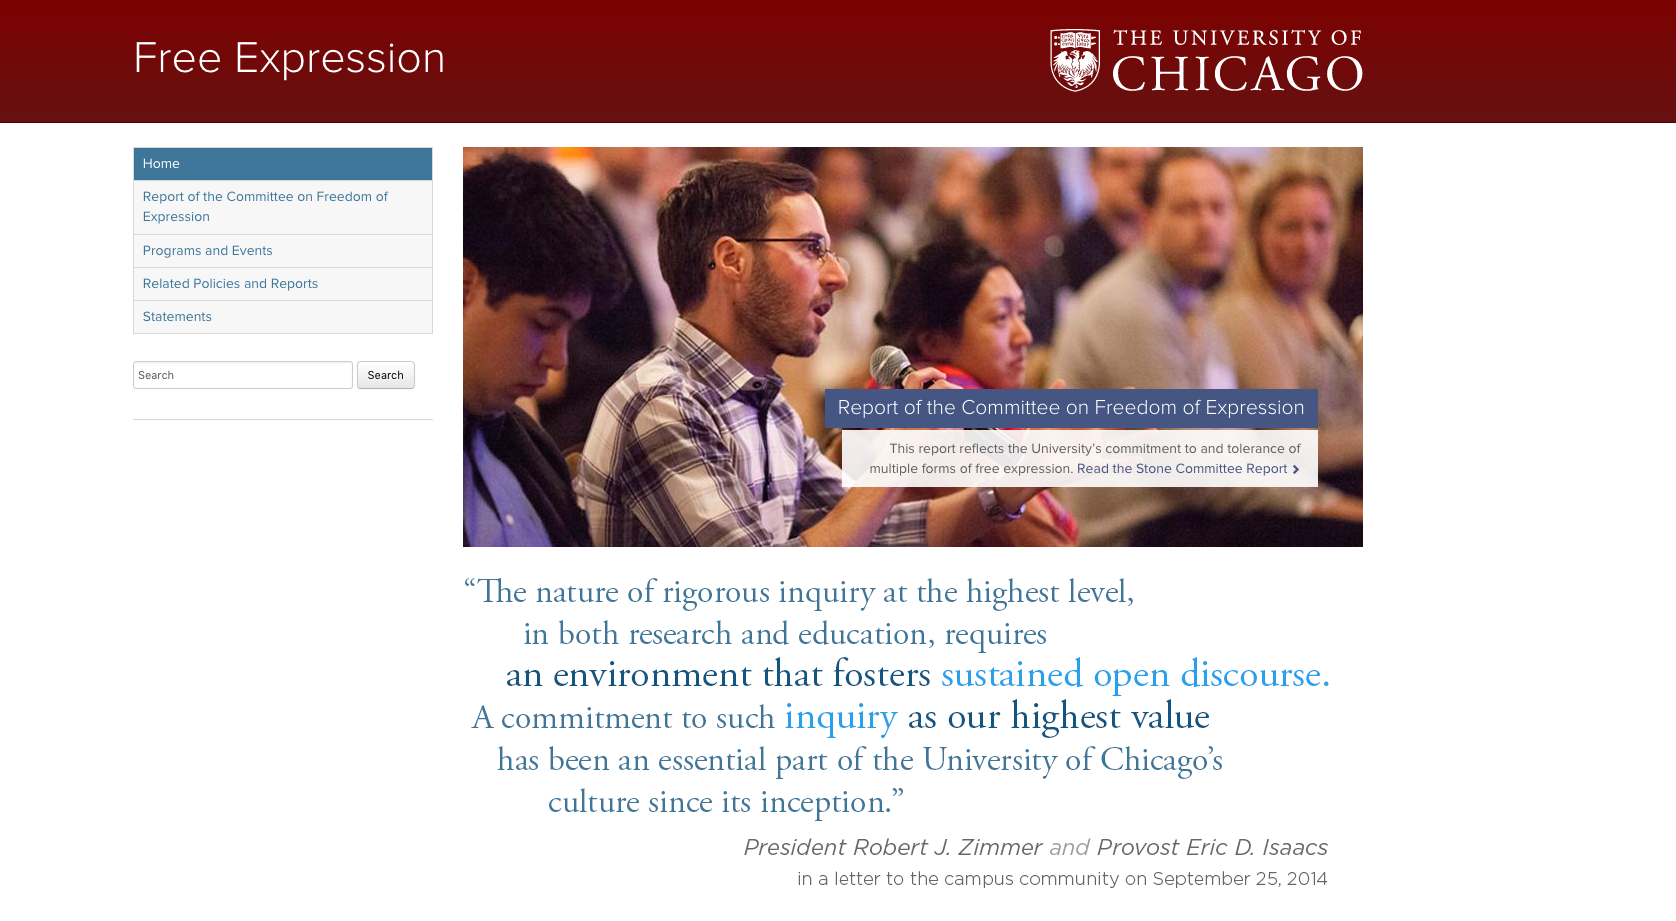 Webpage found in letter to incoming freshmen at the University of Chicago